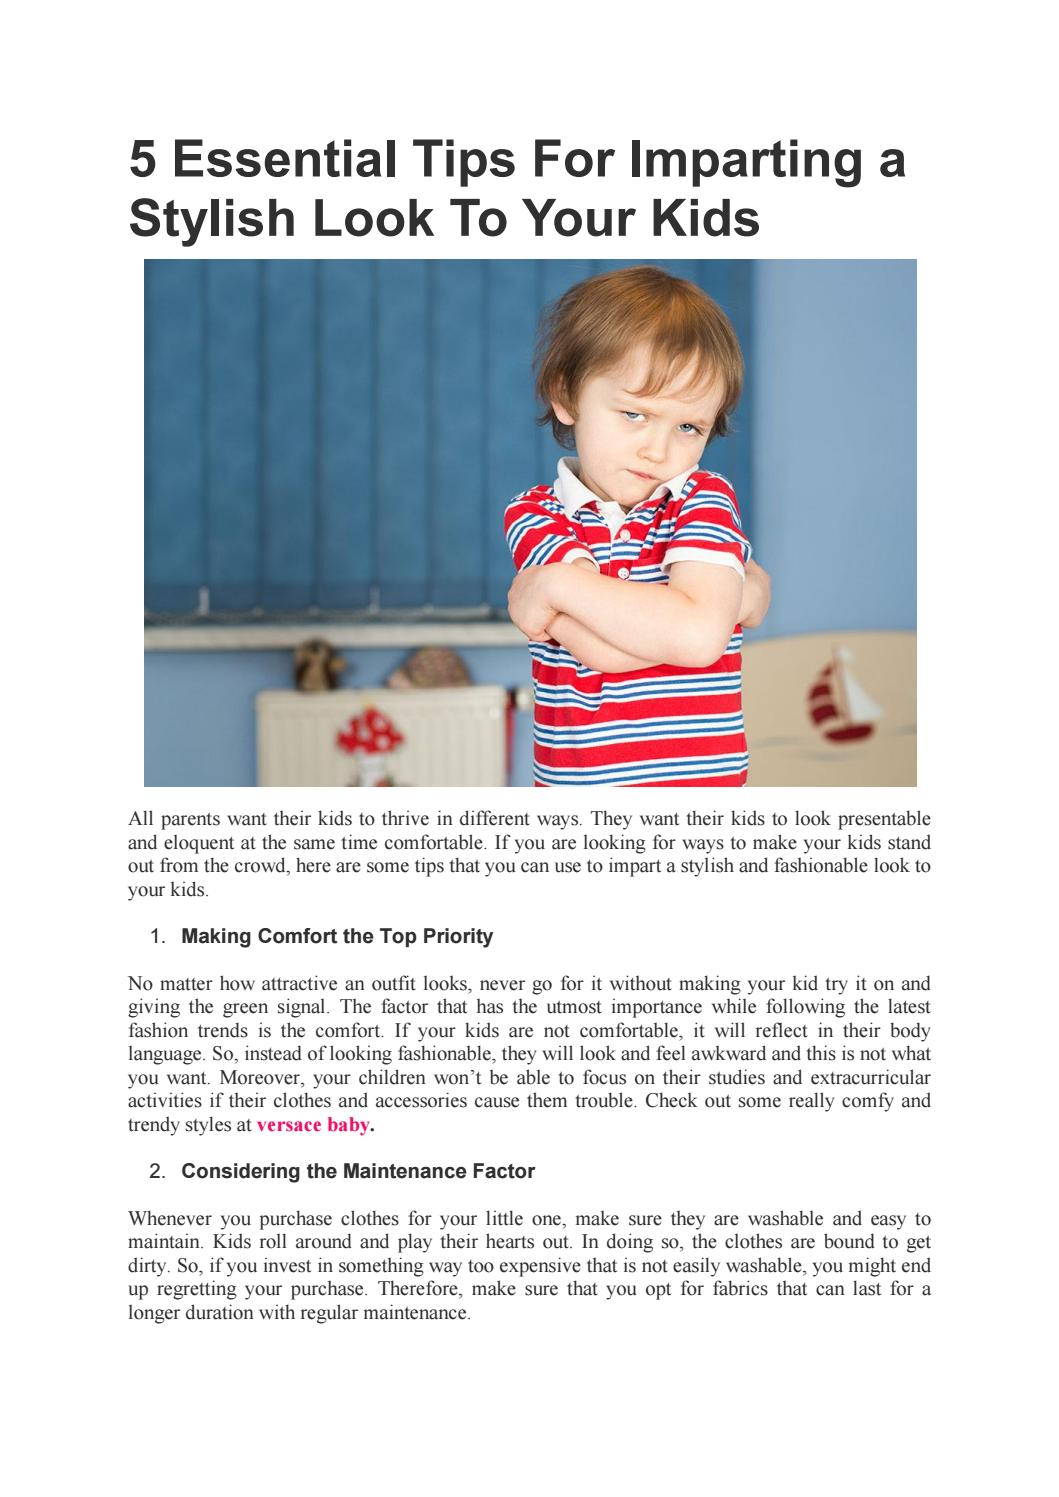 34ba02bea1a 5 Essential Tips For Imparting a Stylish Look To Your Kids - Bambini  Fashion by Bambini Fashion - issuu